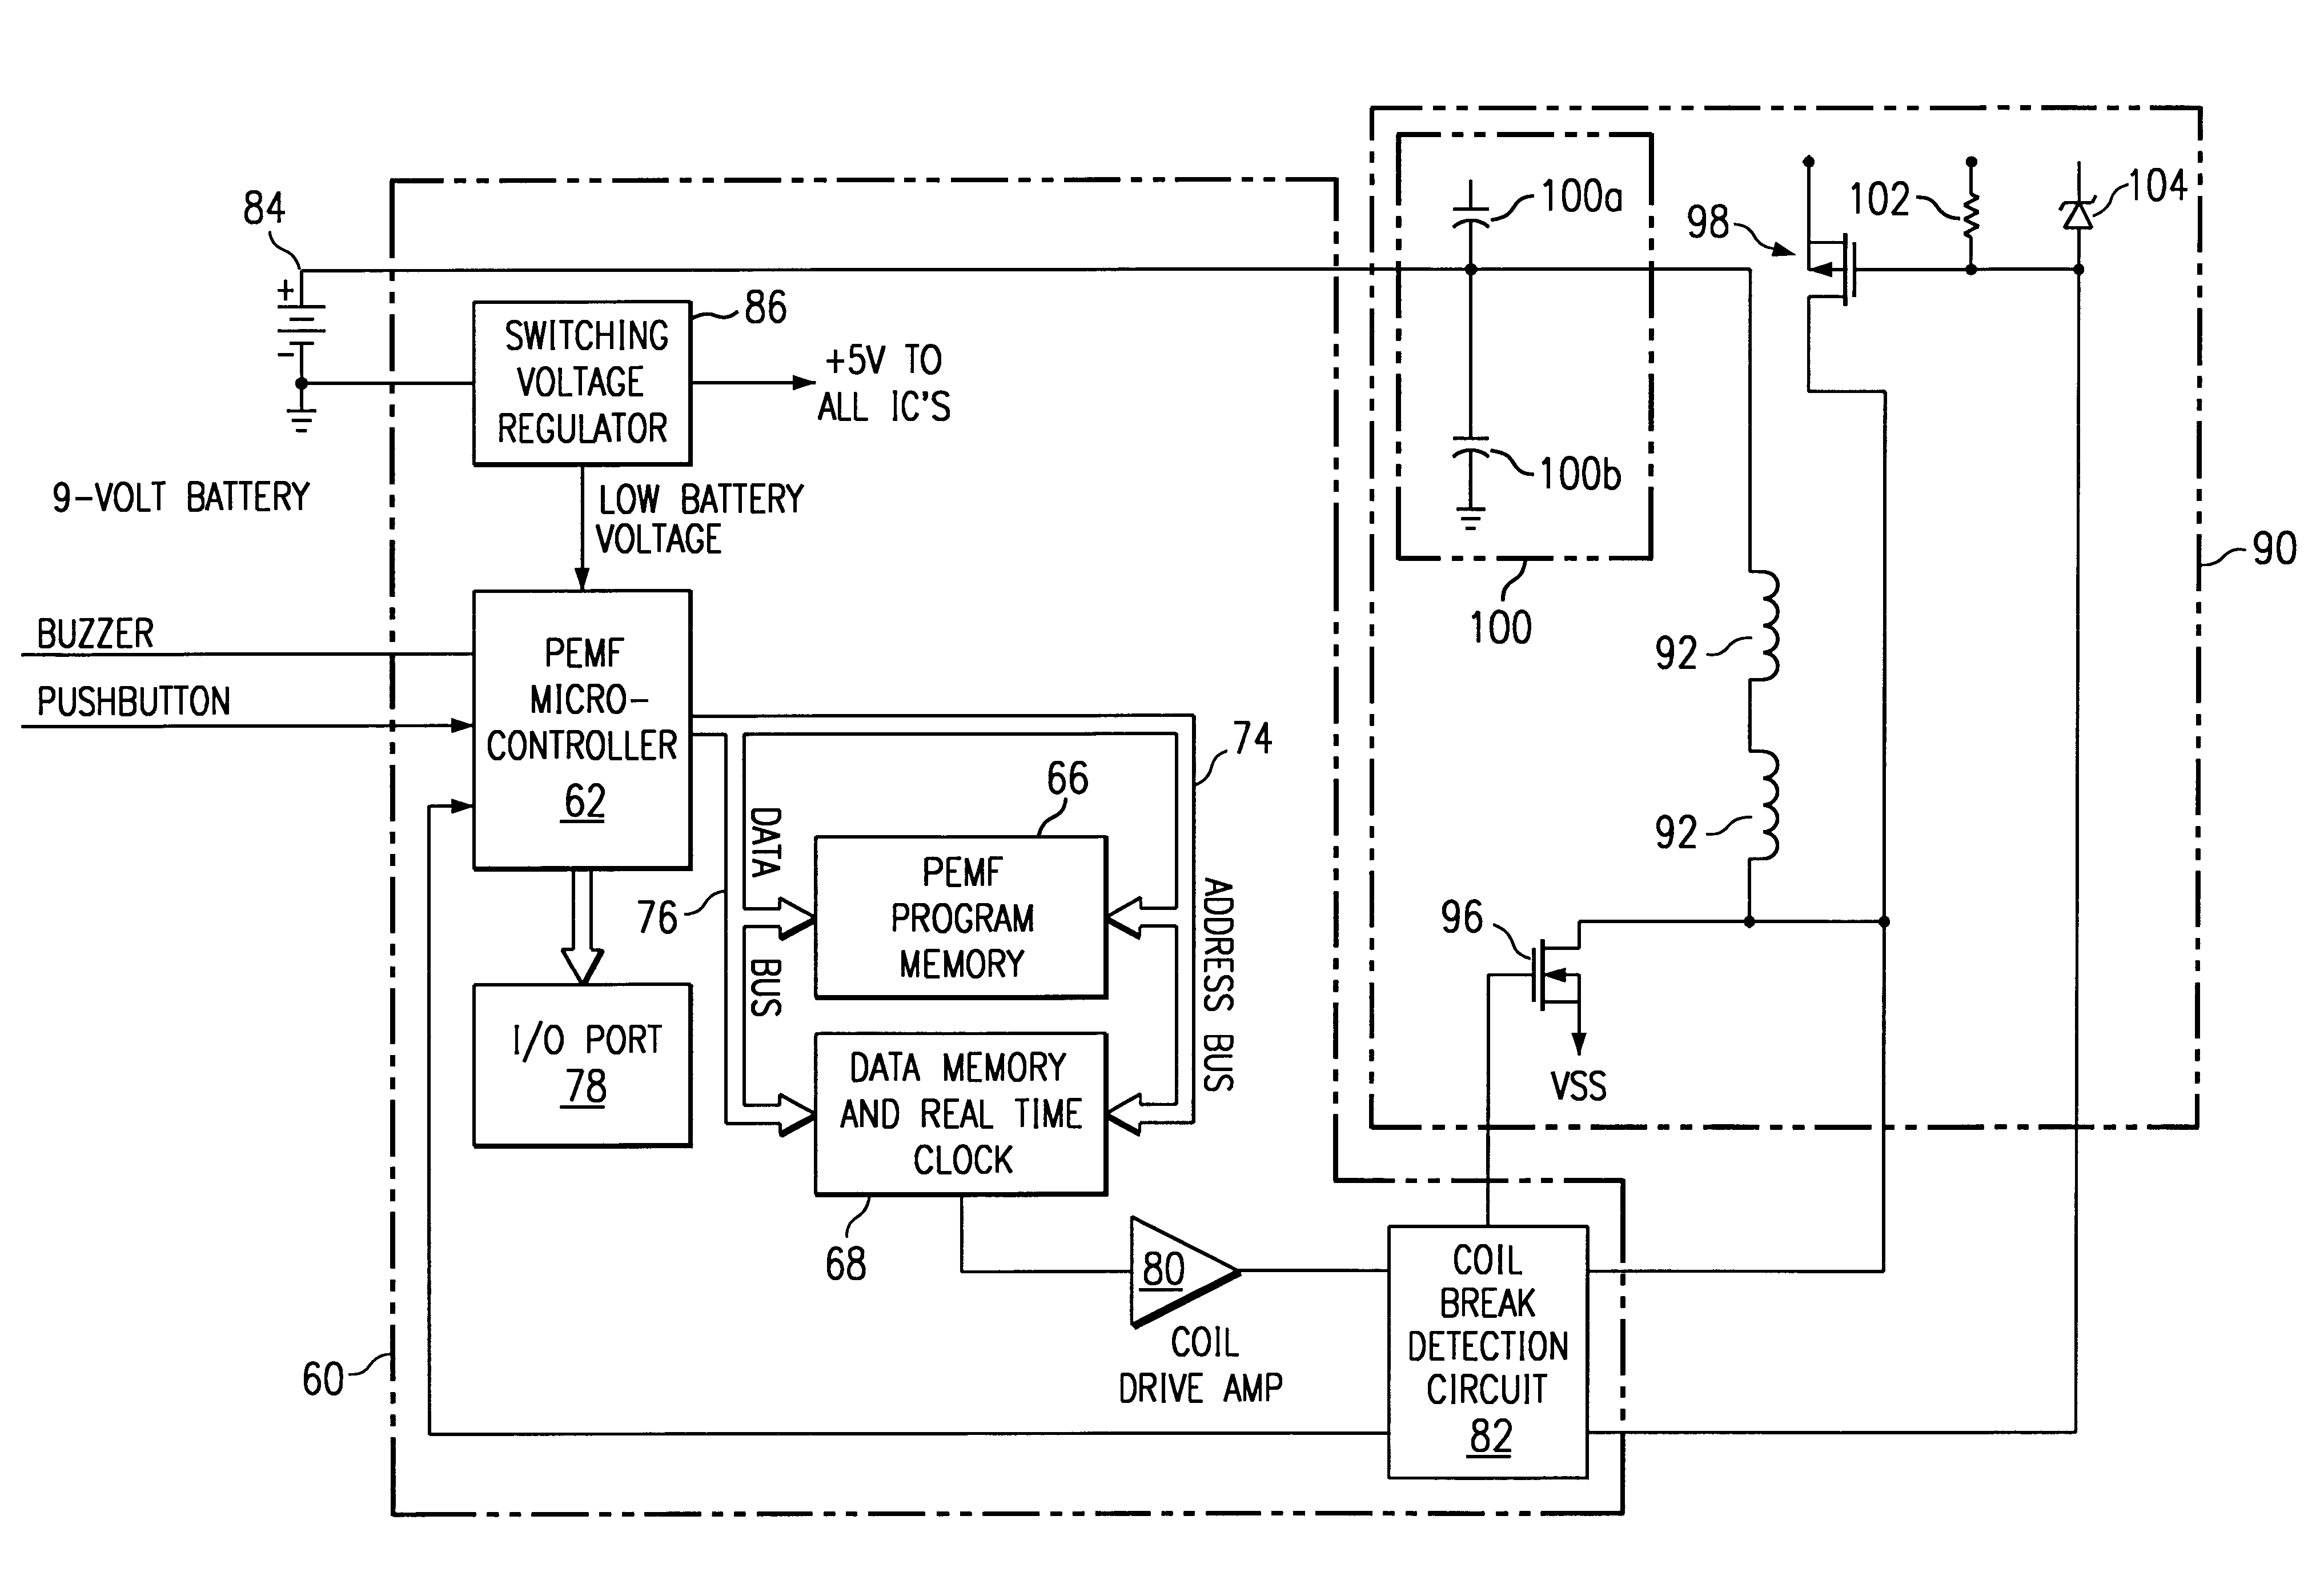 Analytics For Us Patent No 6261221 Flexible Coil Pulsed Magnetic Chuck Wiring Diagram The Single Transducer May Be Fabricated On A Substrate And Formed With Printed Circuit Techniques